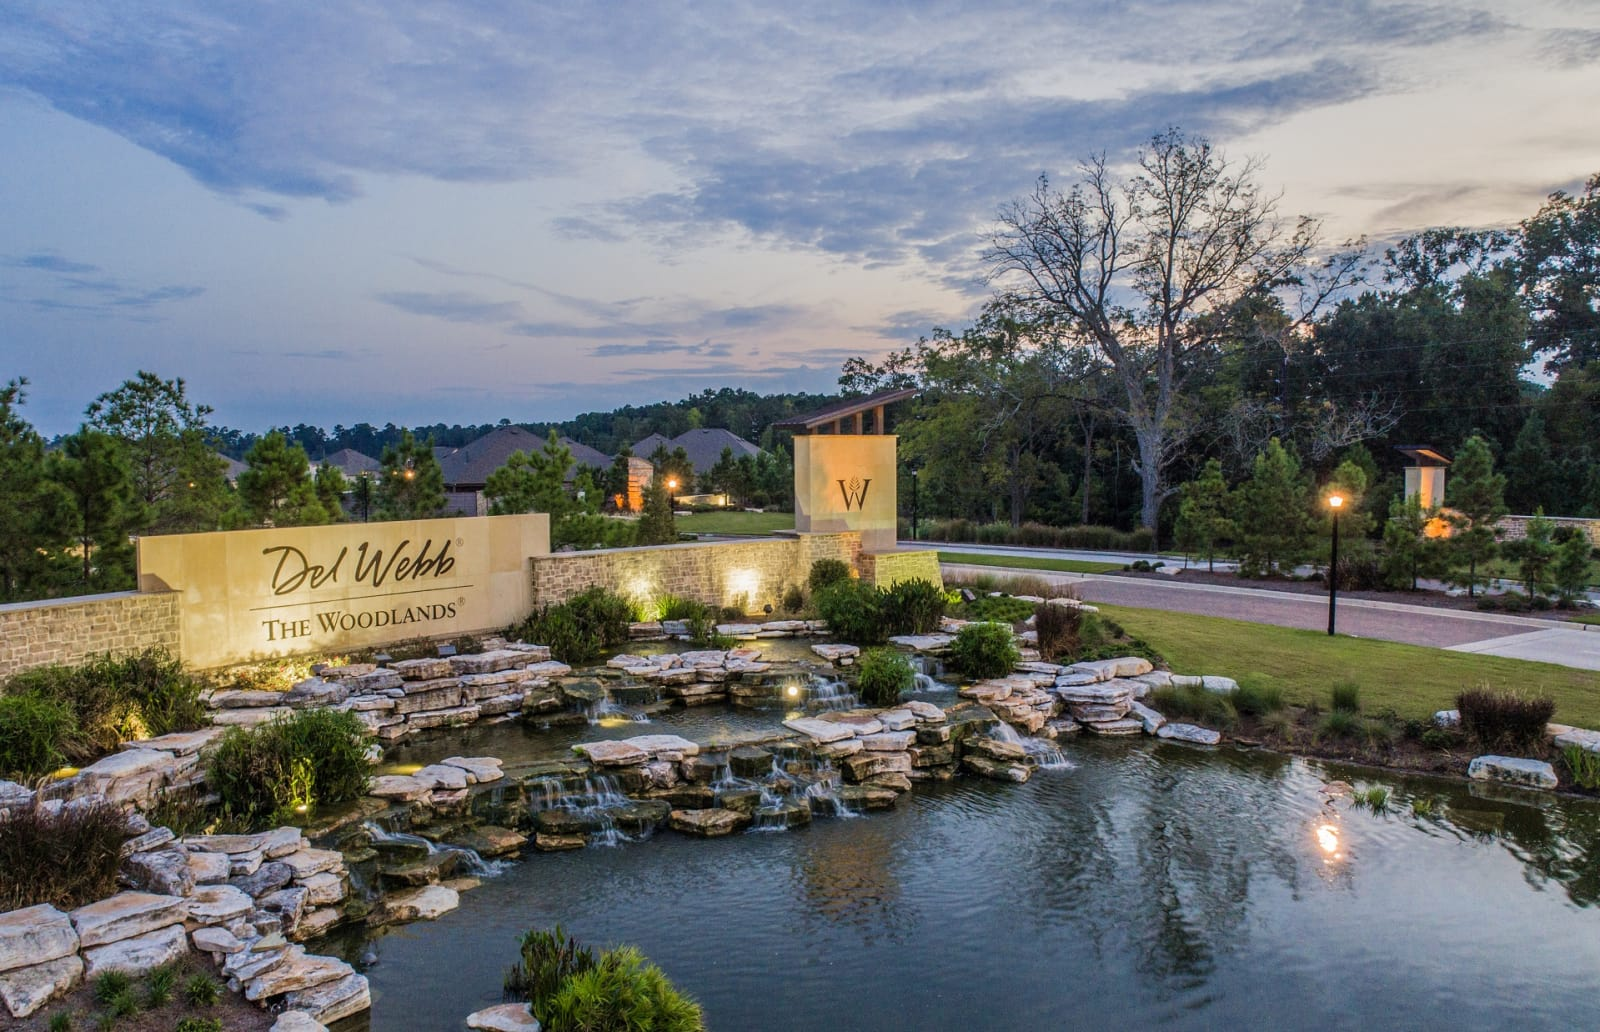 Del Webb The Woodlands